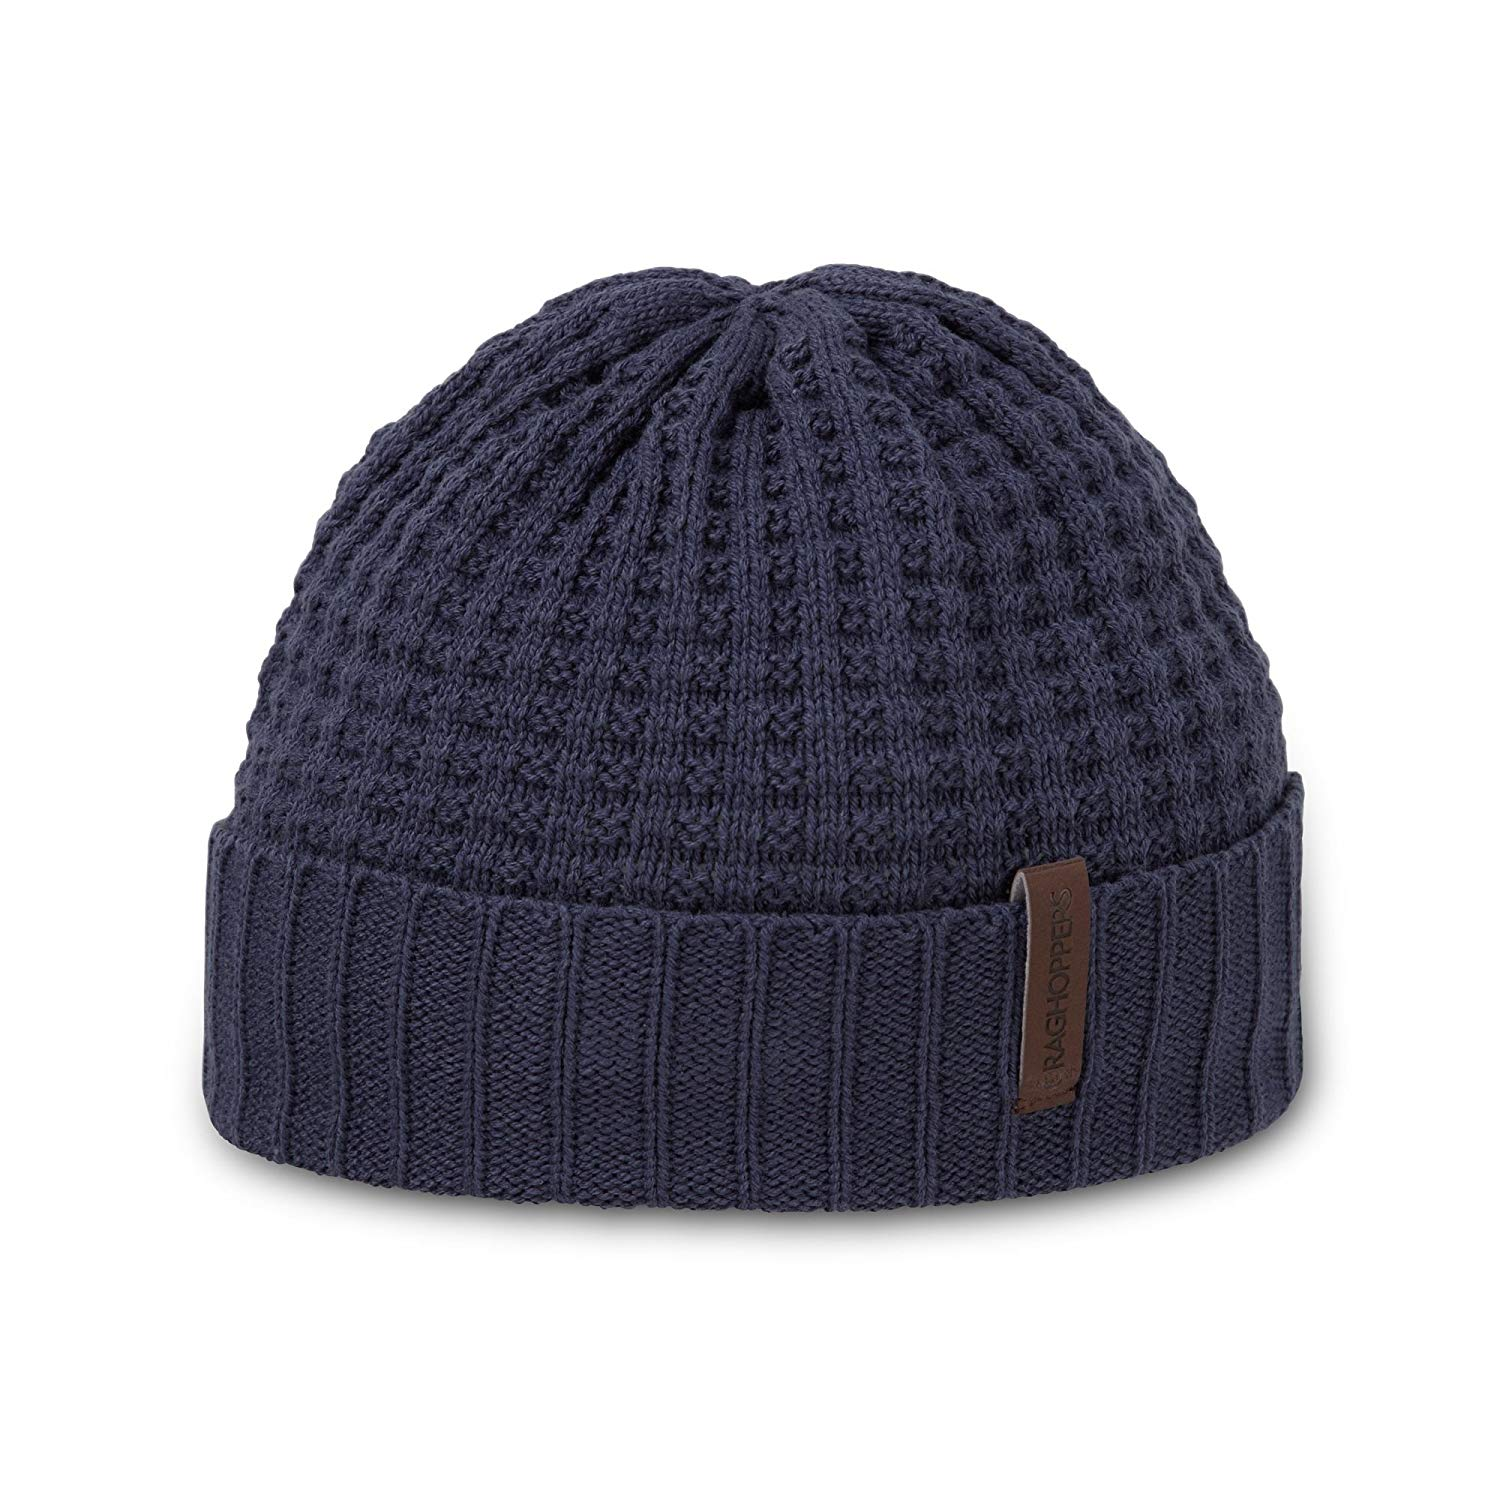 a424ed1af4b Get Quotations · Craghoppers Outdoor Unisex Brompton Waffle Knit Beanie Hat